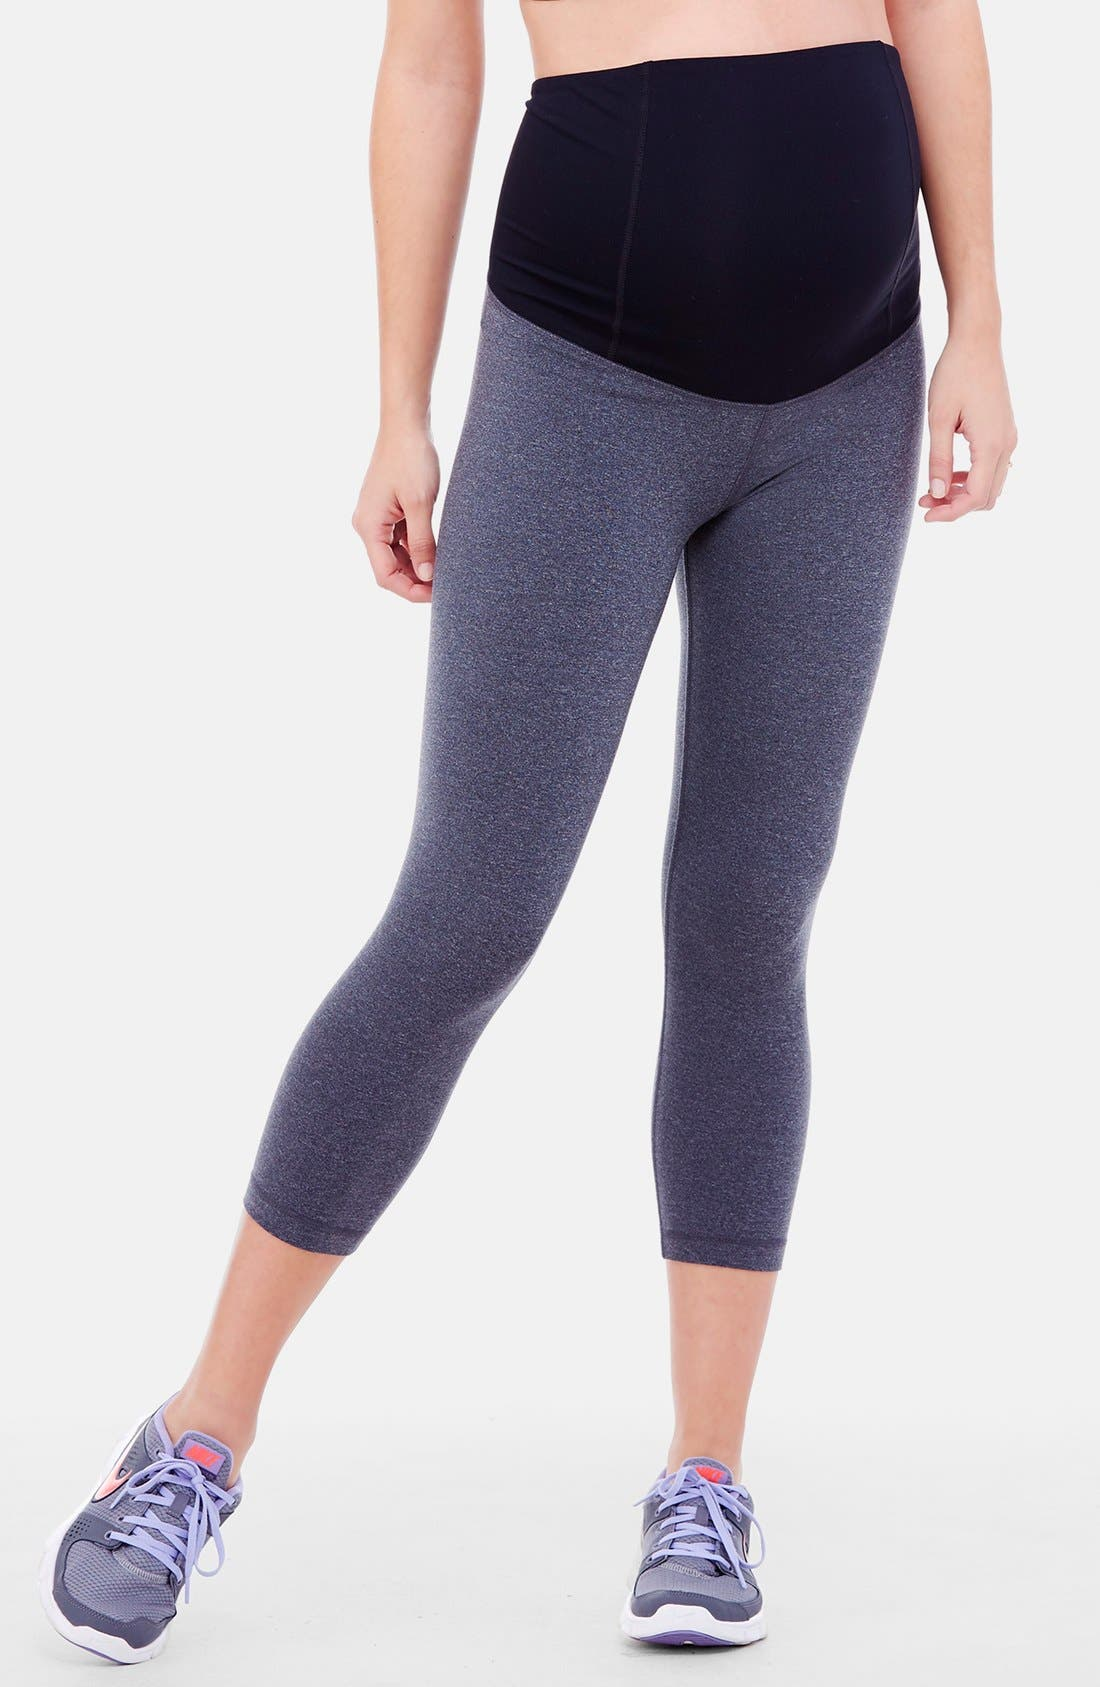 Ingrid & Isabel® Active Maternity Capri Pants with Crossover Panel